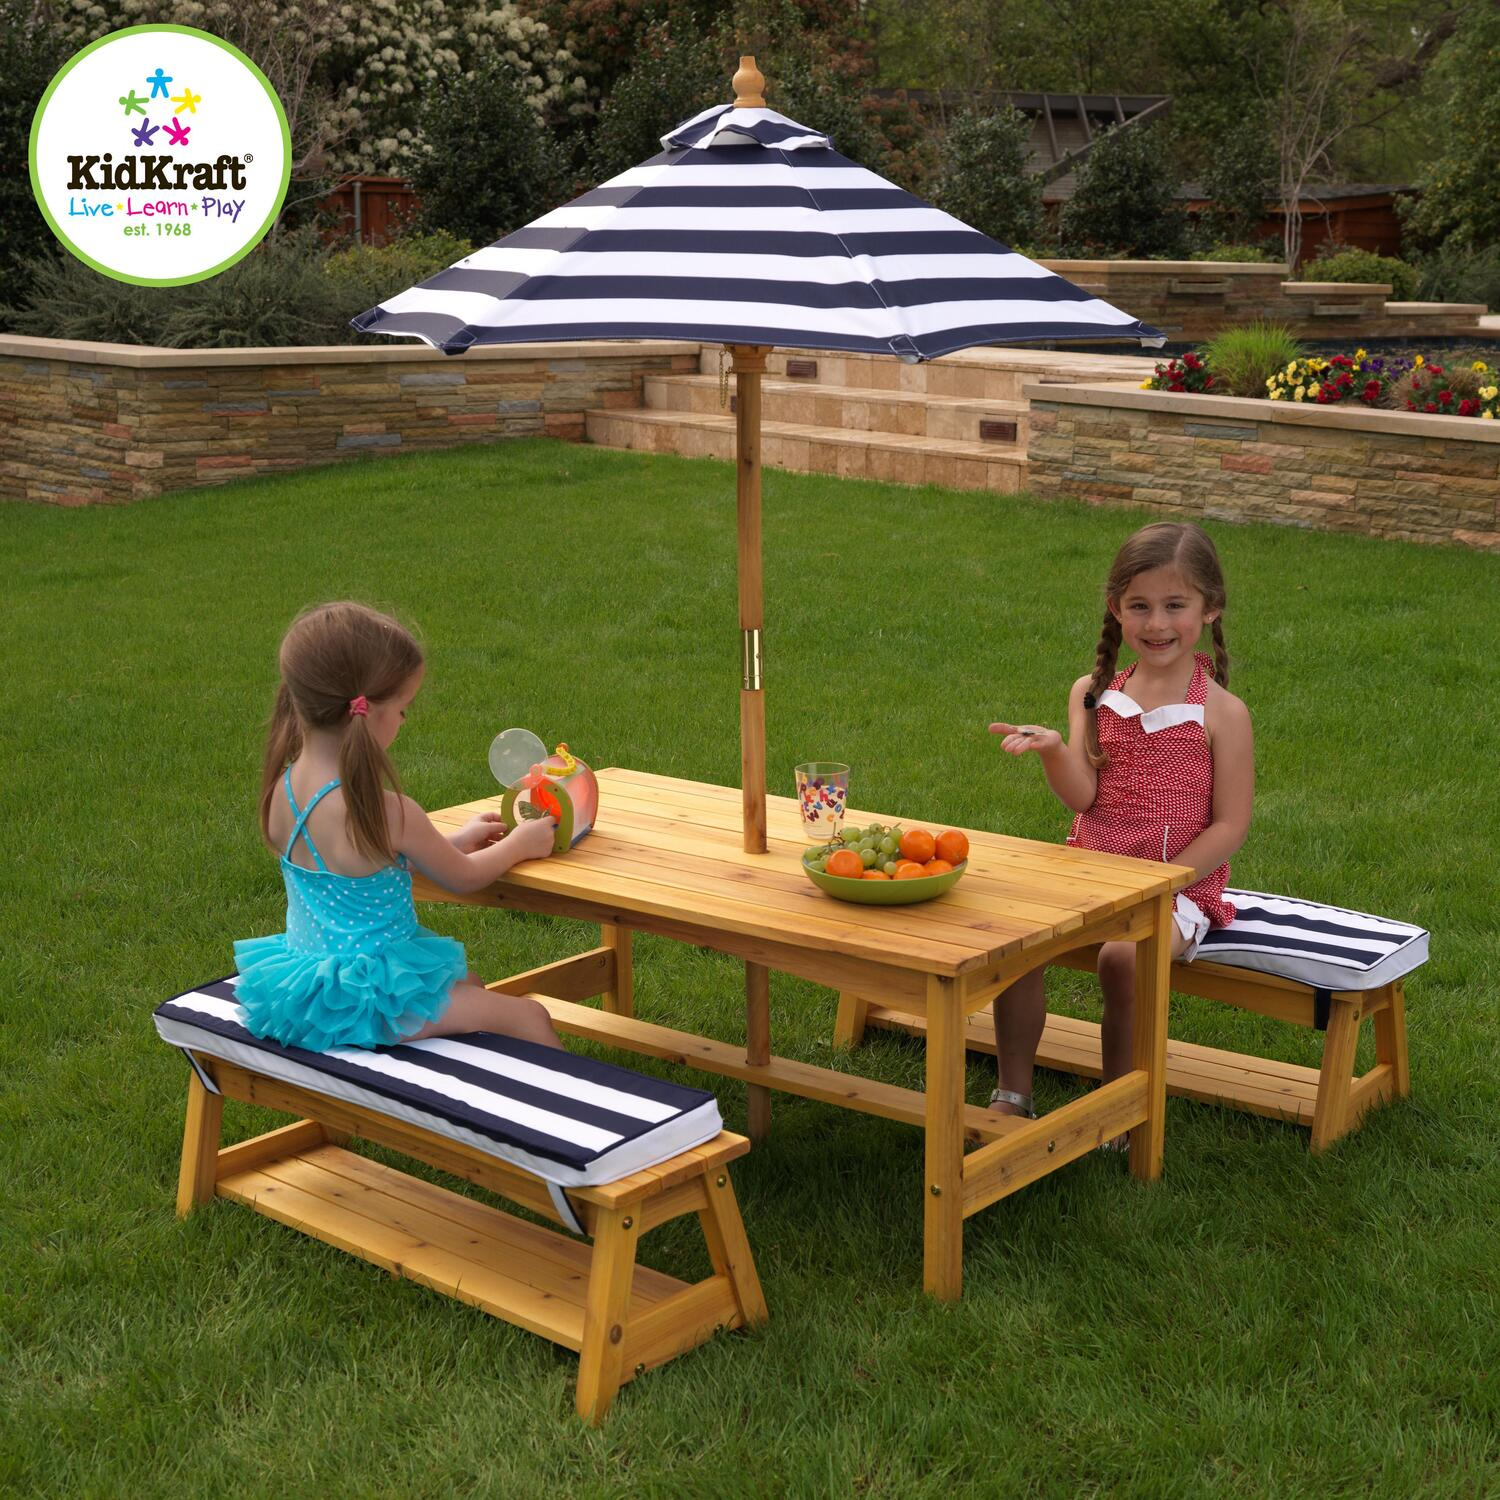 kidkraft outdoor table bench set with cushions an umbrella by oj